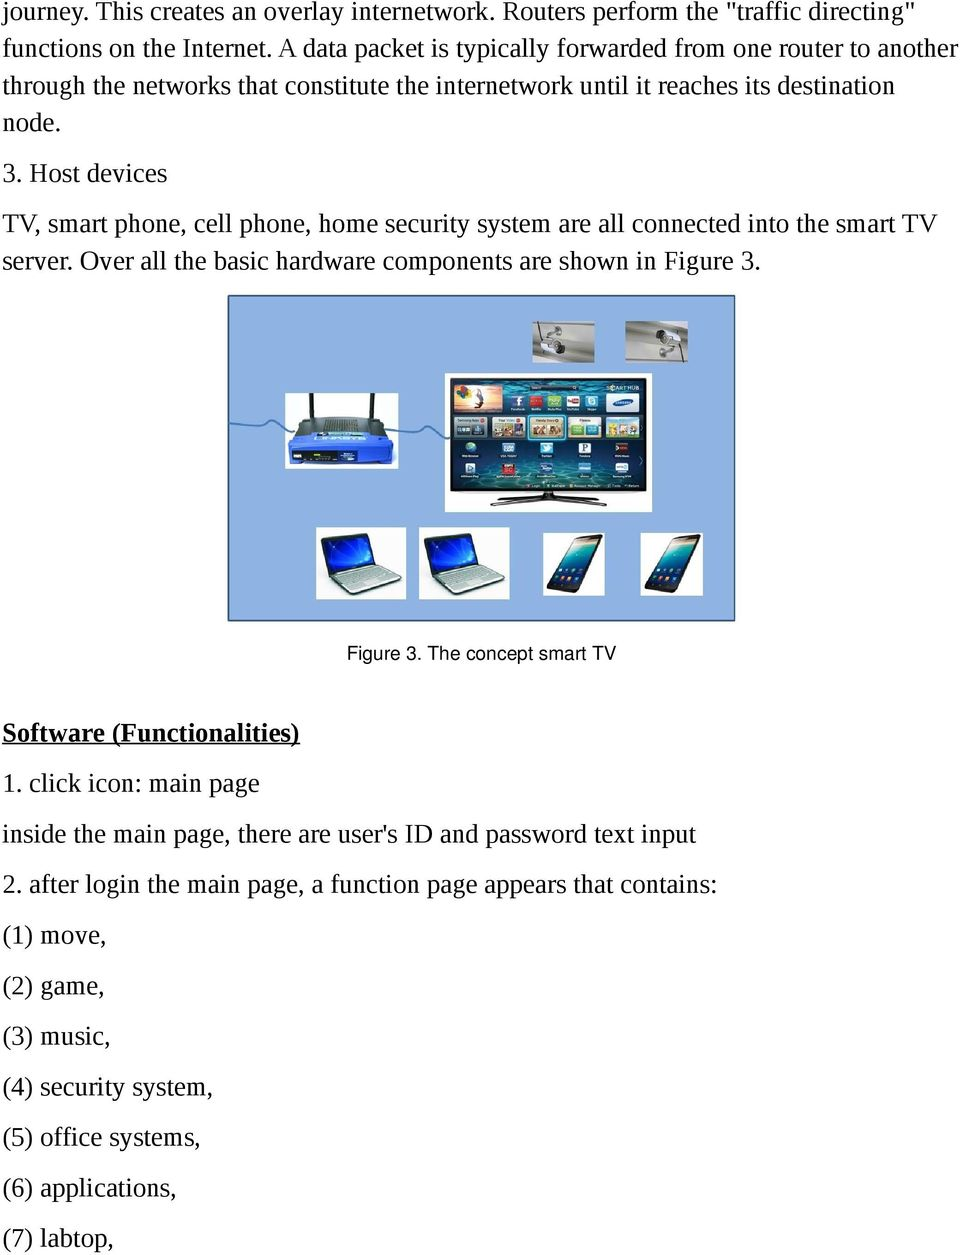 Host devices TV, smart phone, cell phone, home security system are all connected into the smart TV server. Over all the basic hardware components are shown in Figure 3.